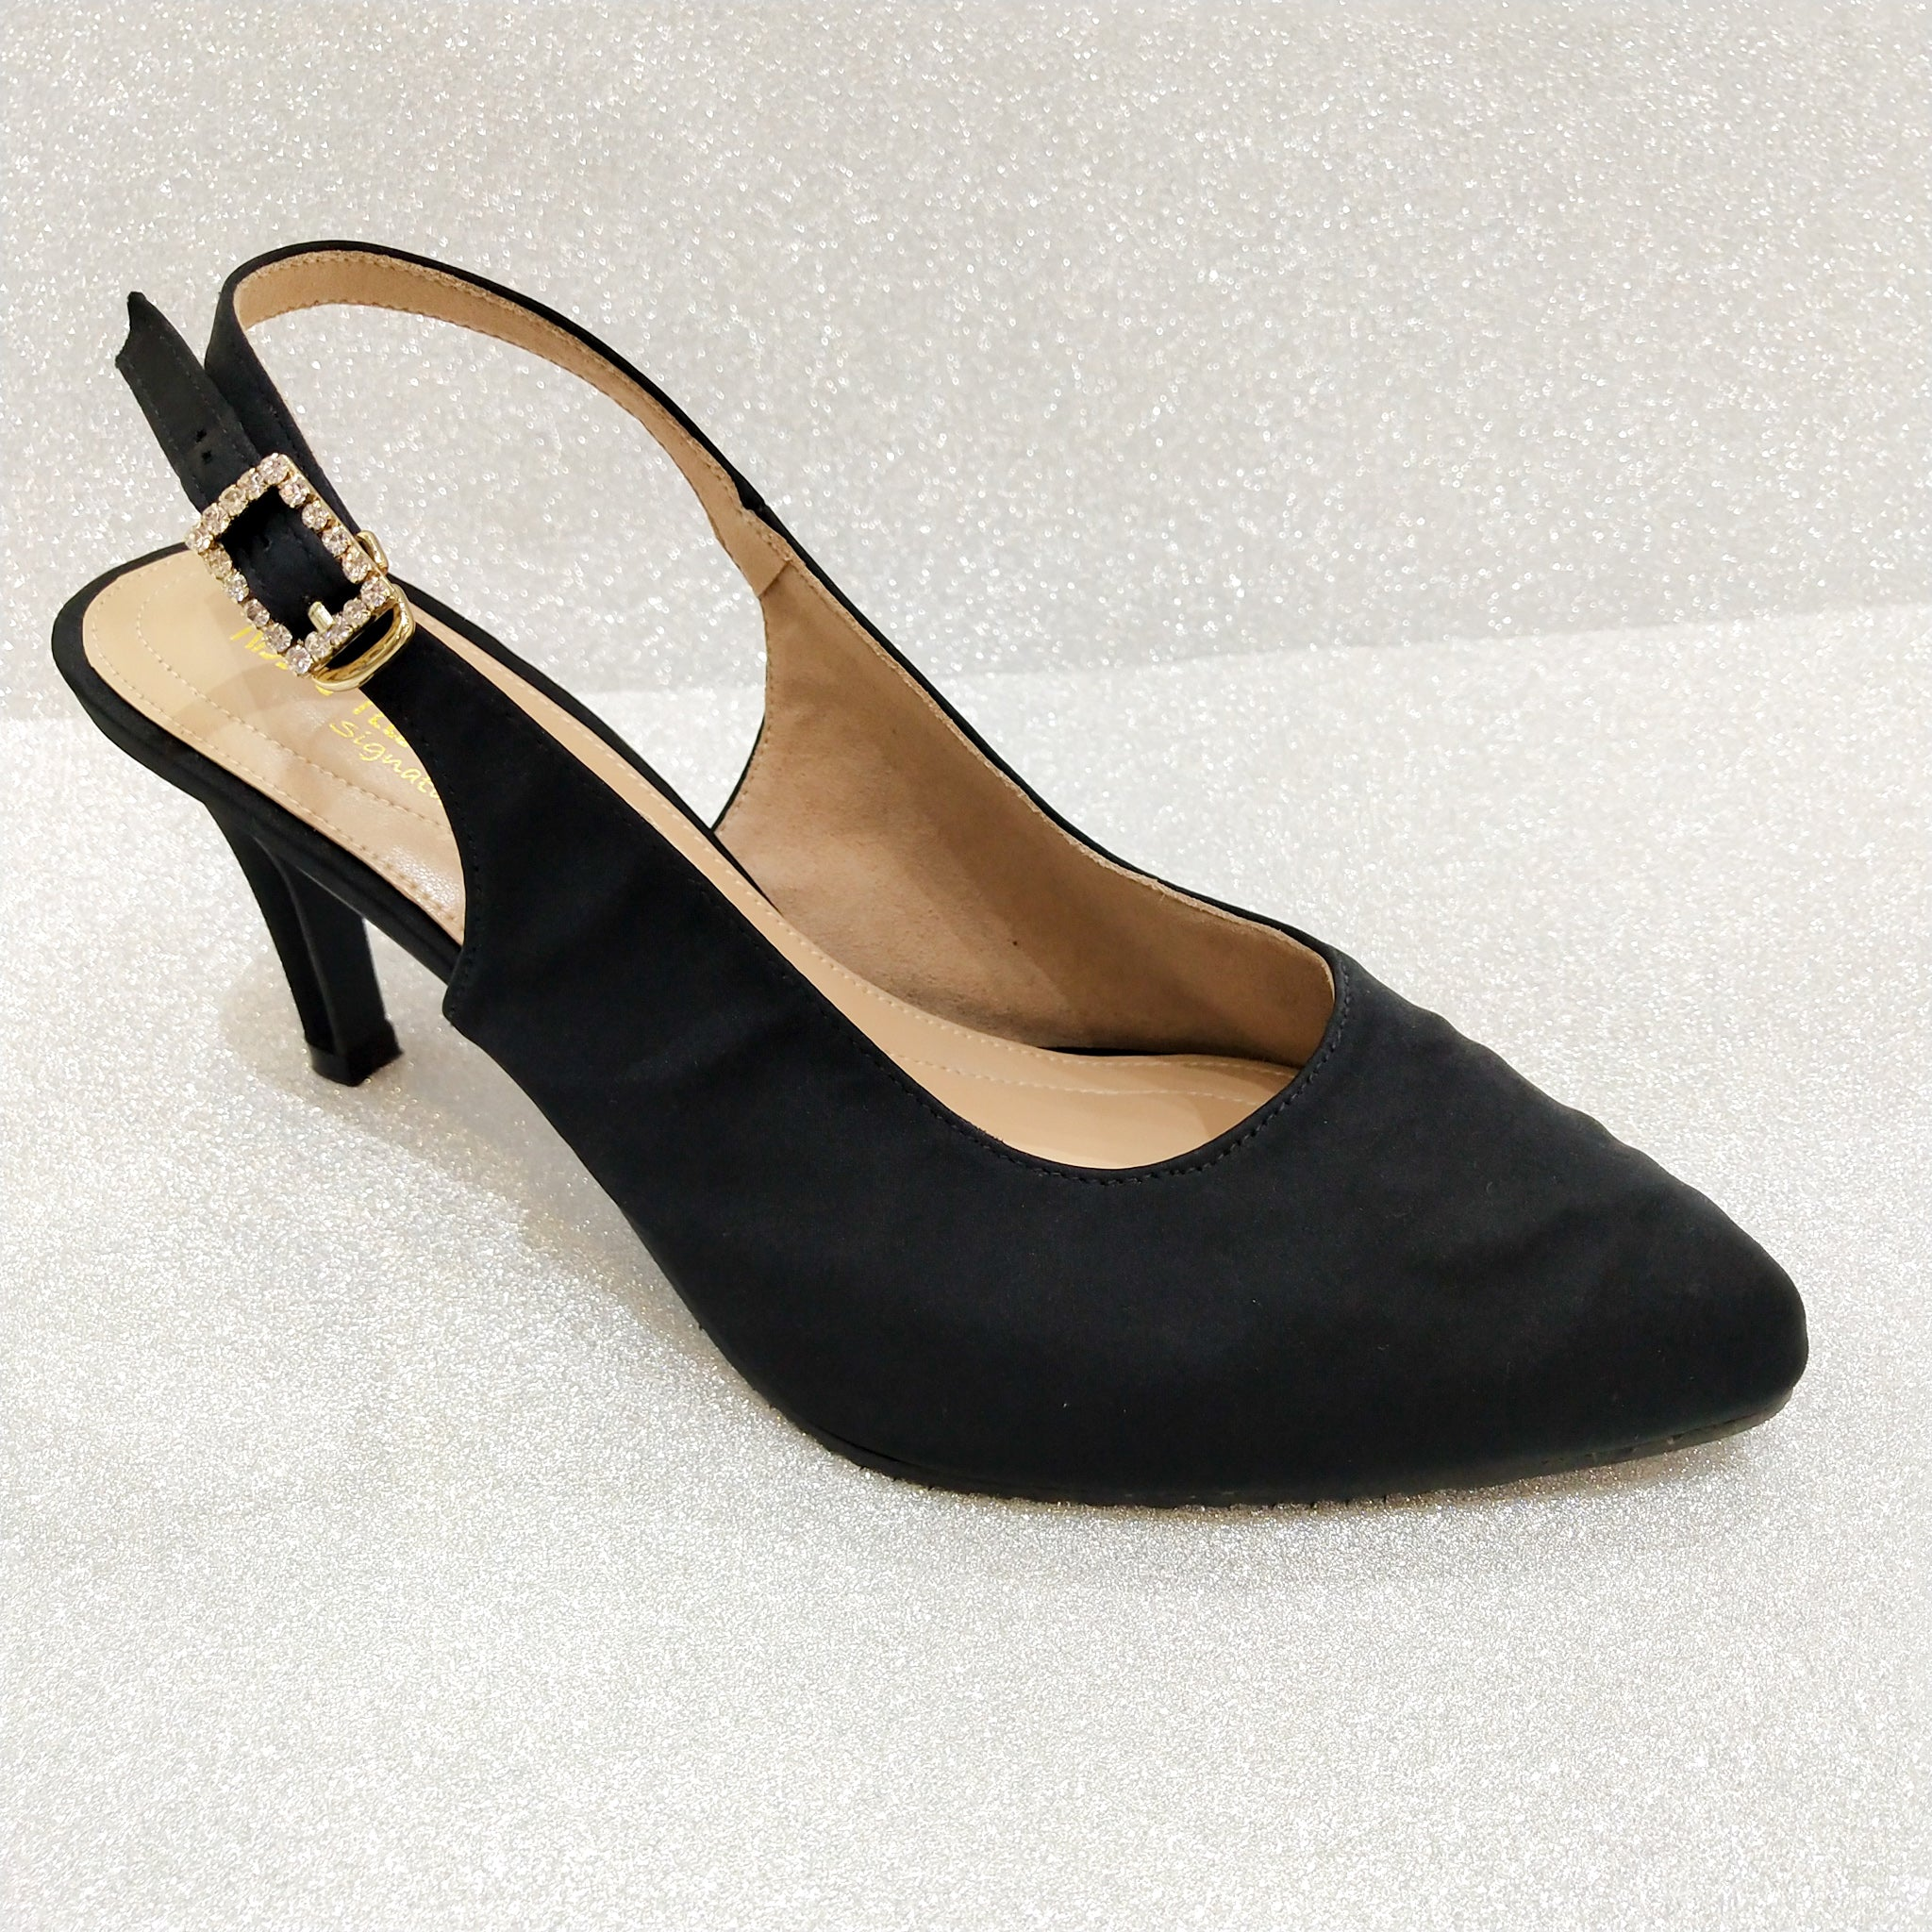 Elena Heels in Black (Reject)